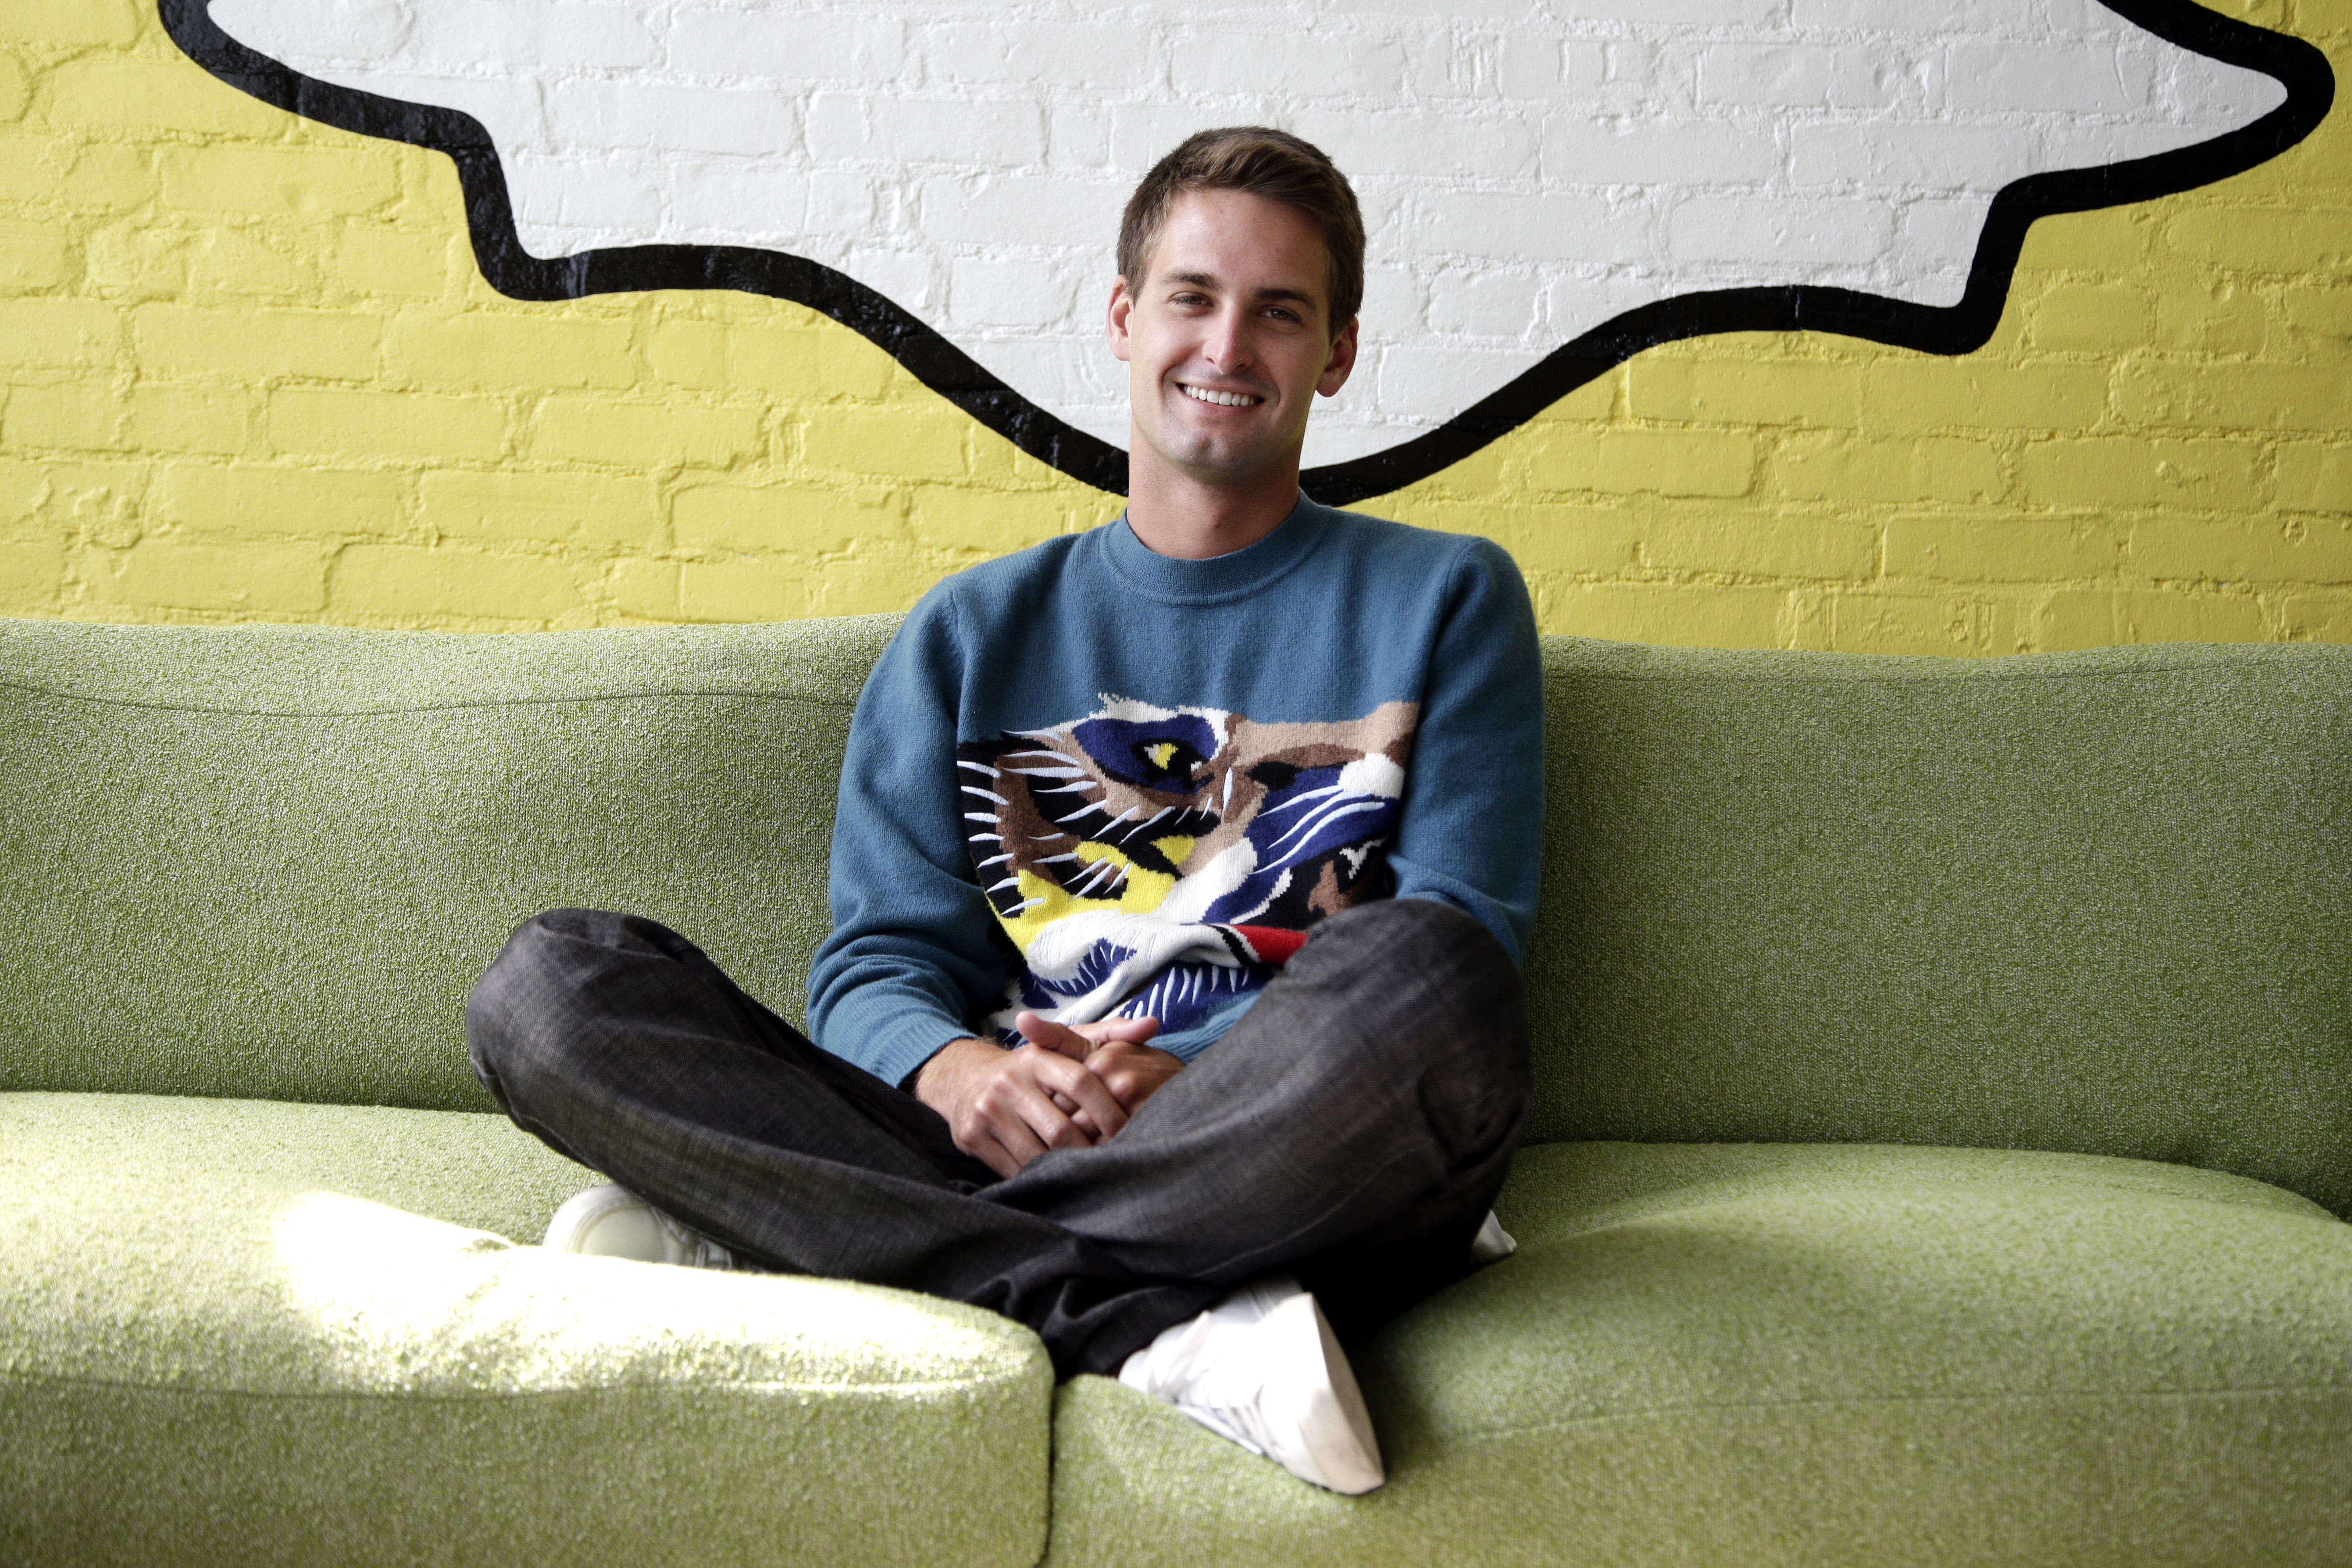 Snapchat CEO Evan Spiegel poses for photos, in Los Angeles, Oct. 24, 2013.